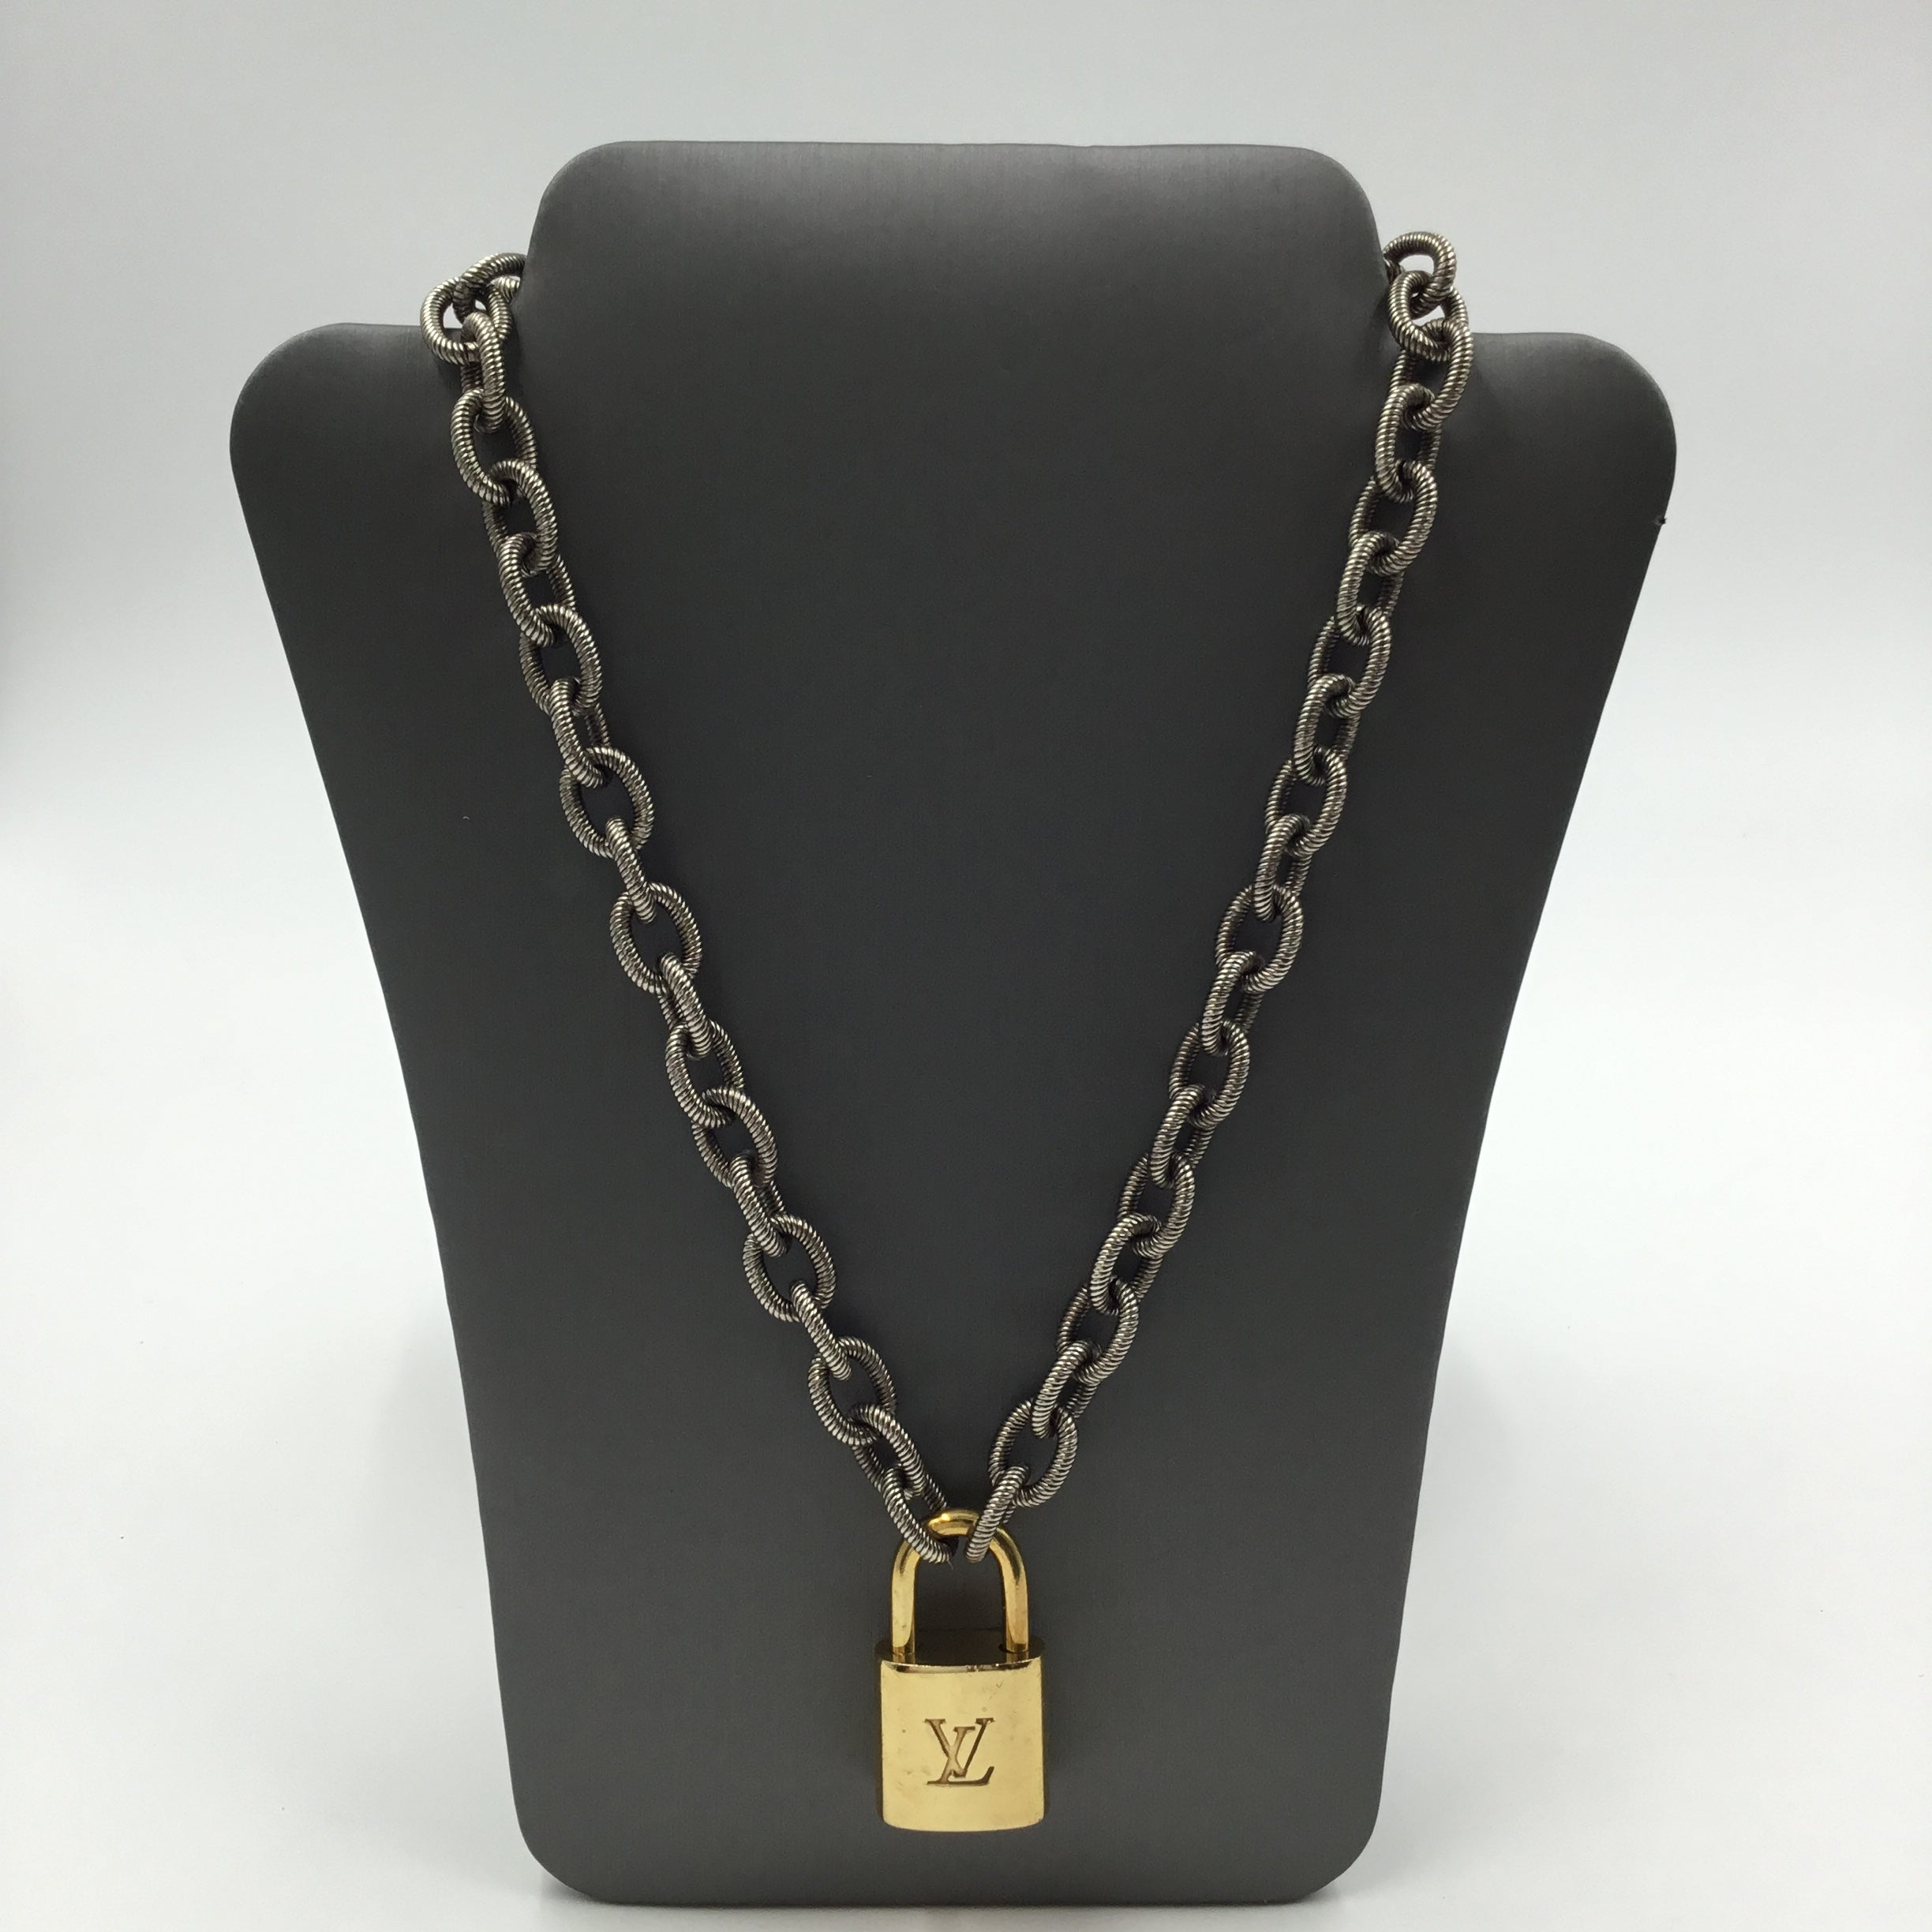 LV Pendant and Chain Necklace